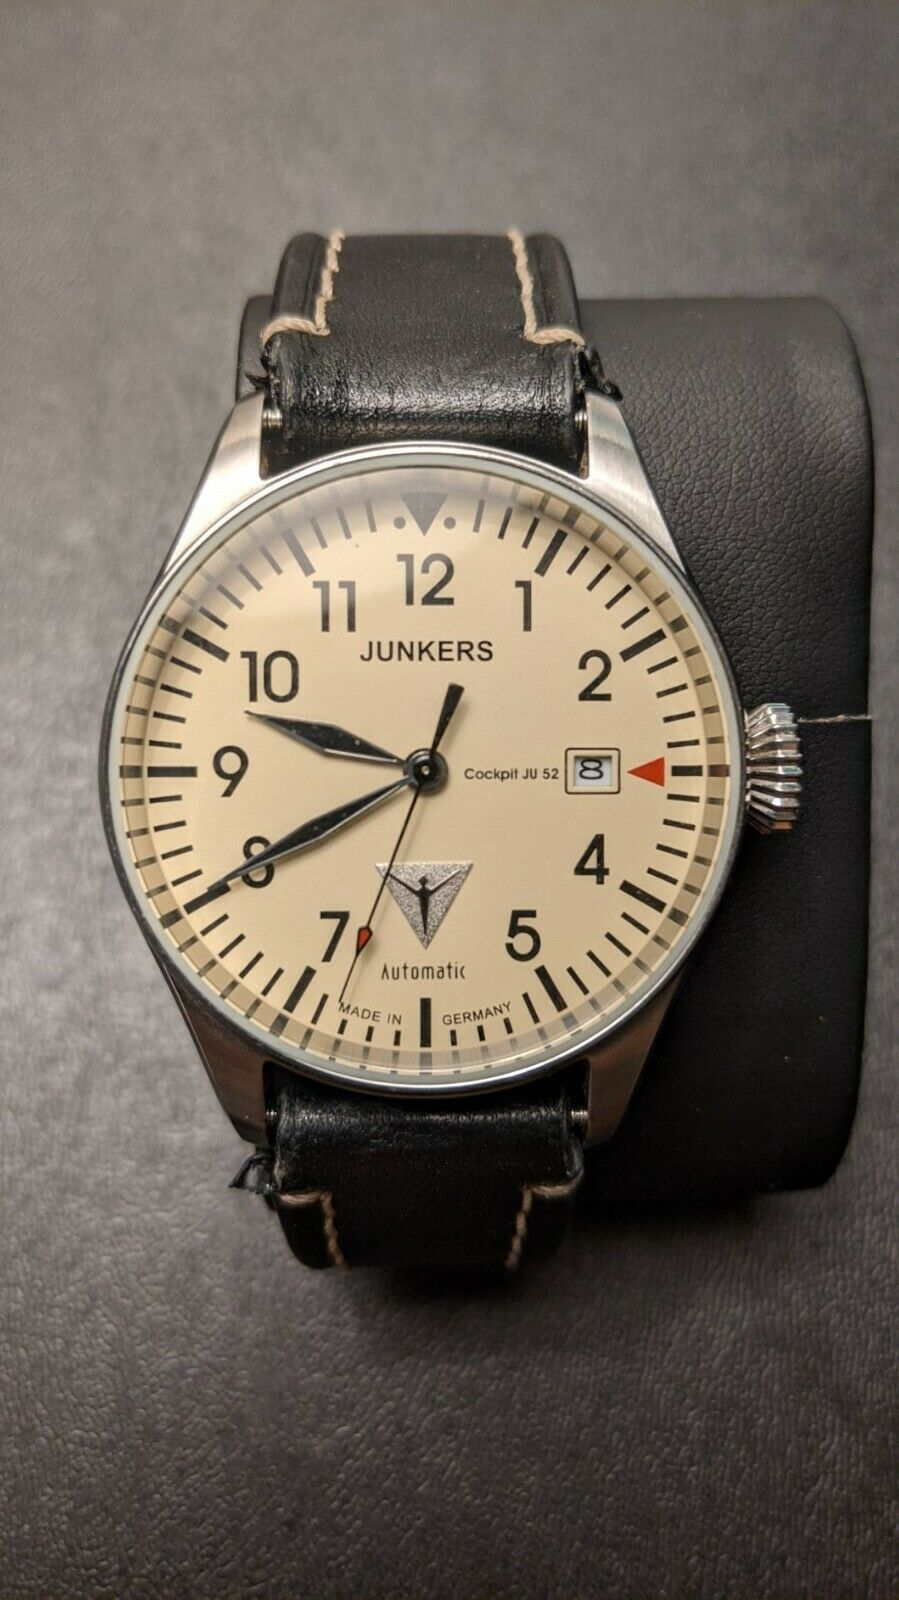 Junkers Cockpit JU 52 Automatic Pilot Watch Made In Germany - $153.00